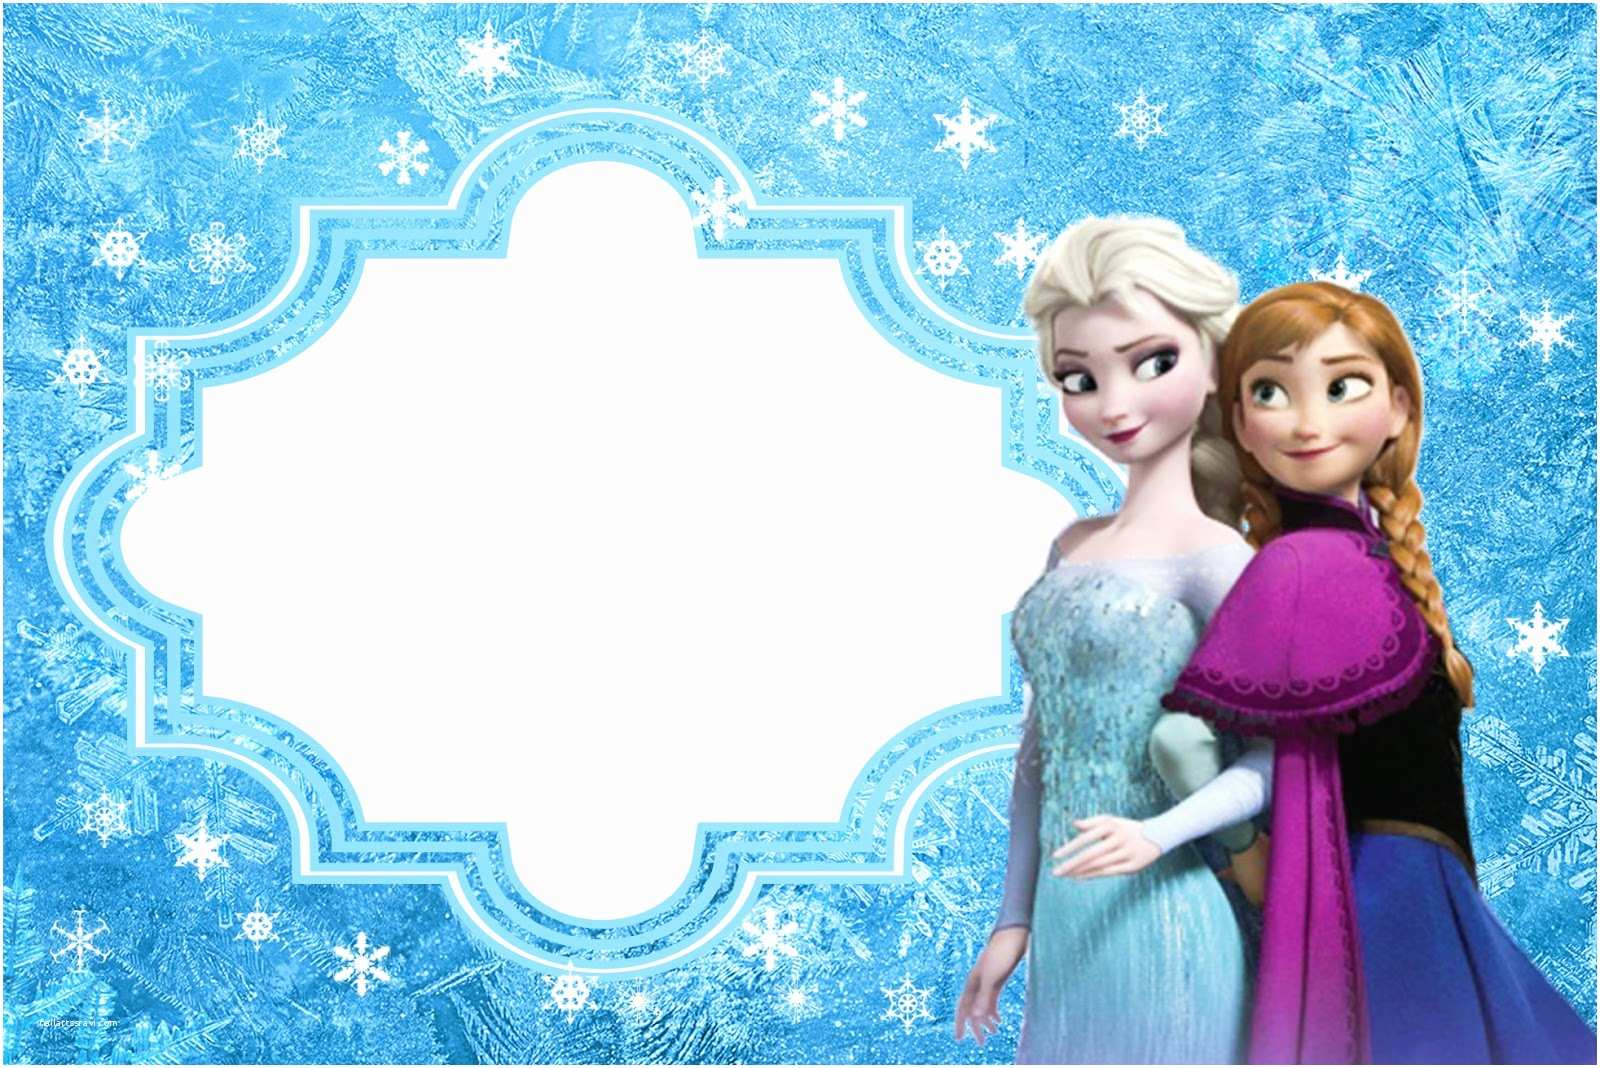 Frozen Party Invitations Frozen Free Printable Cards or Party Invitations